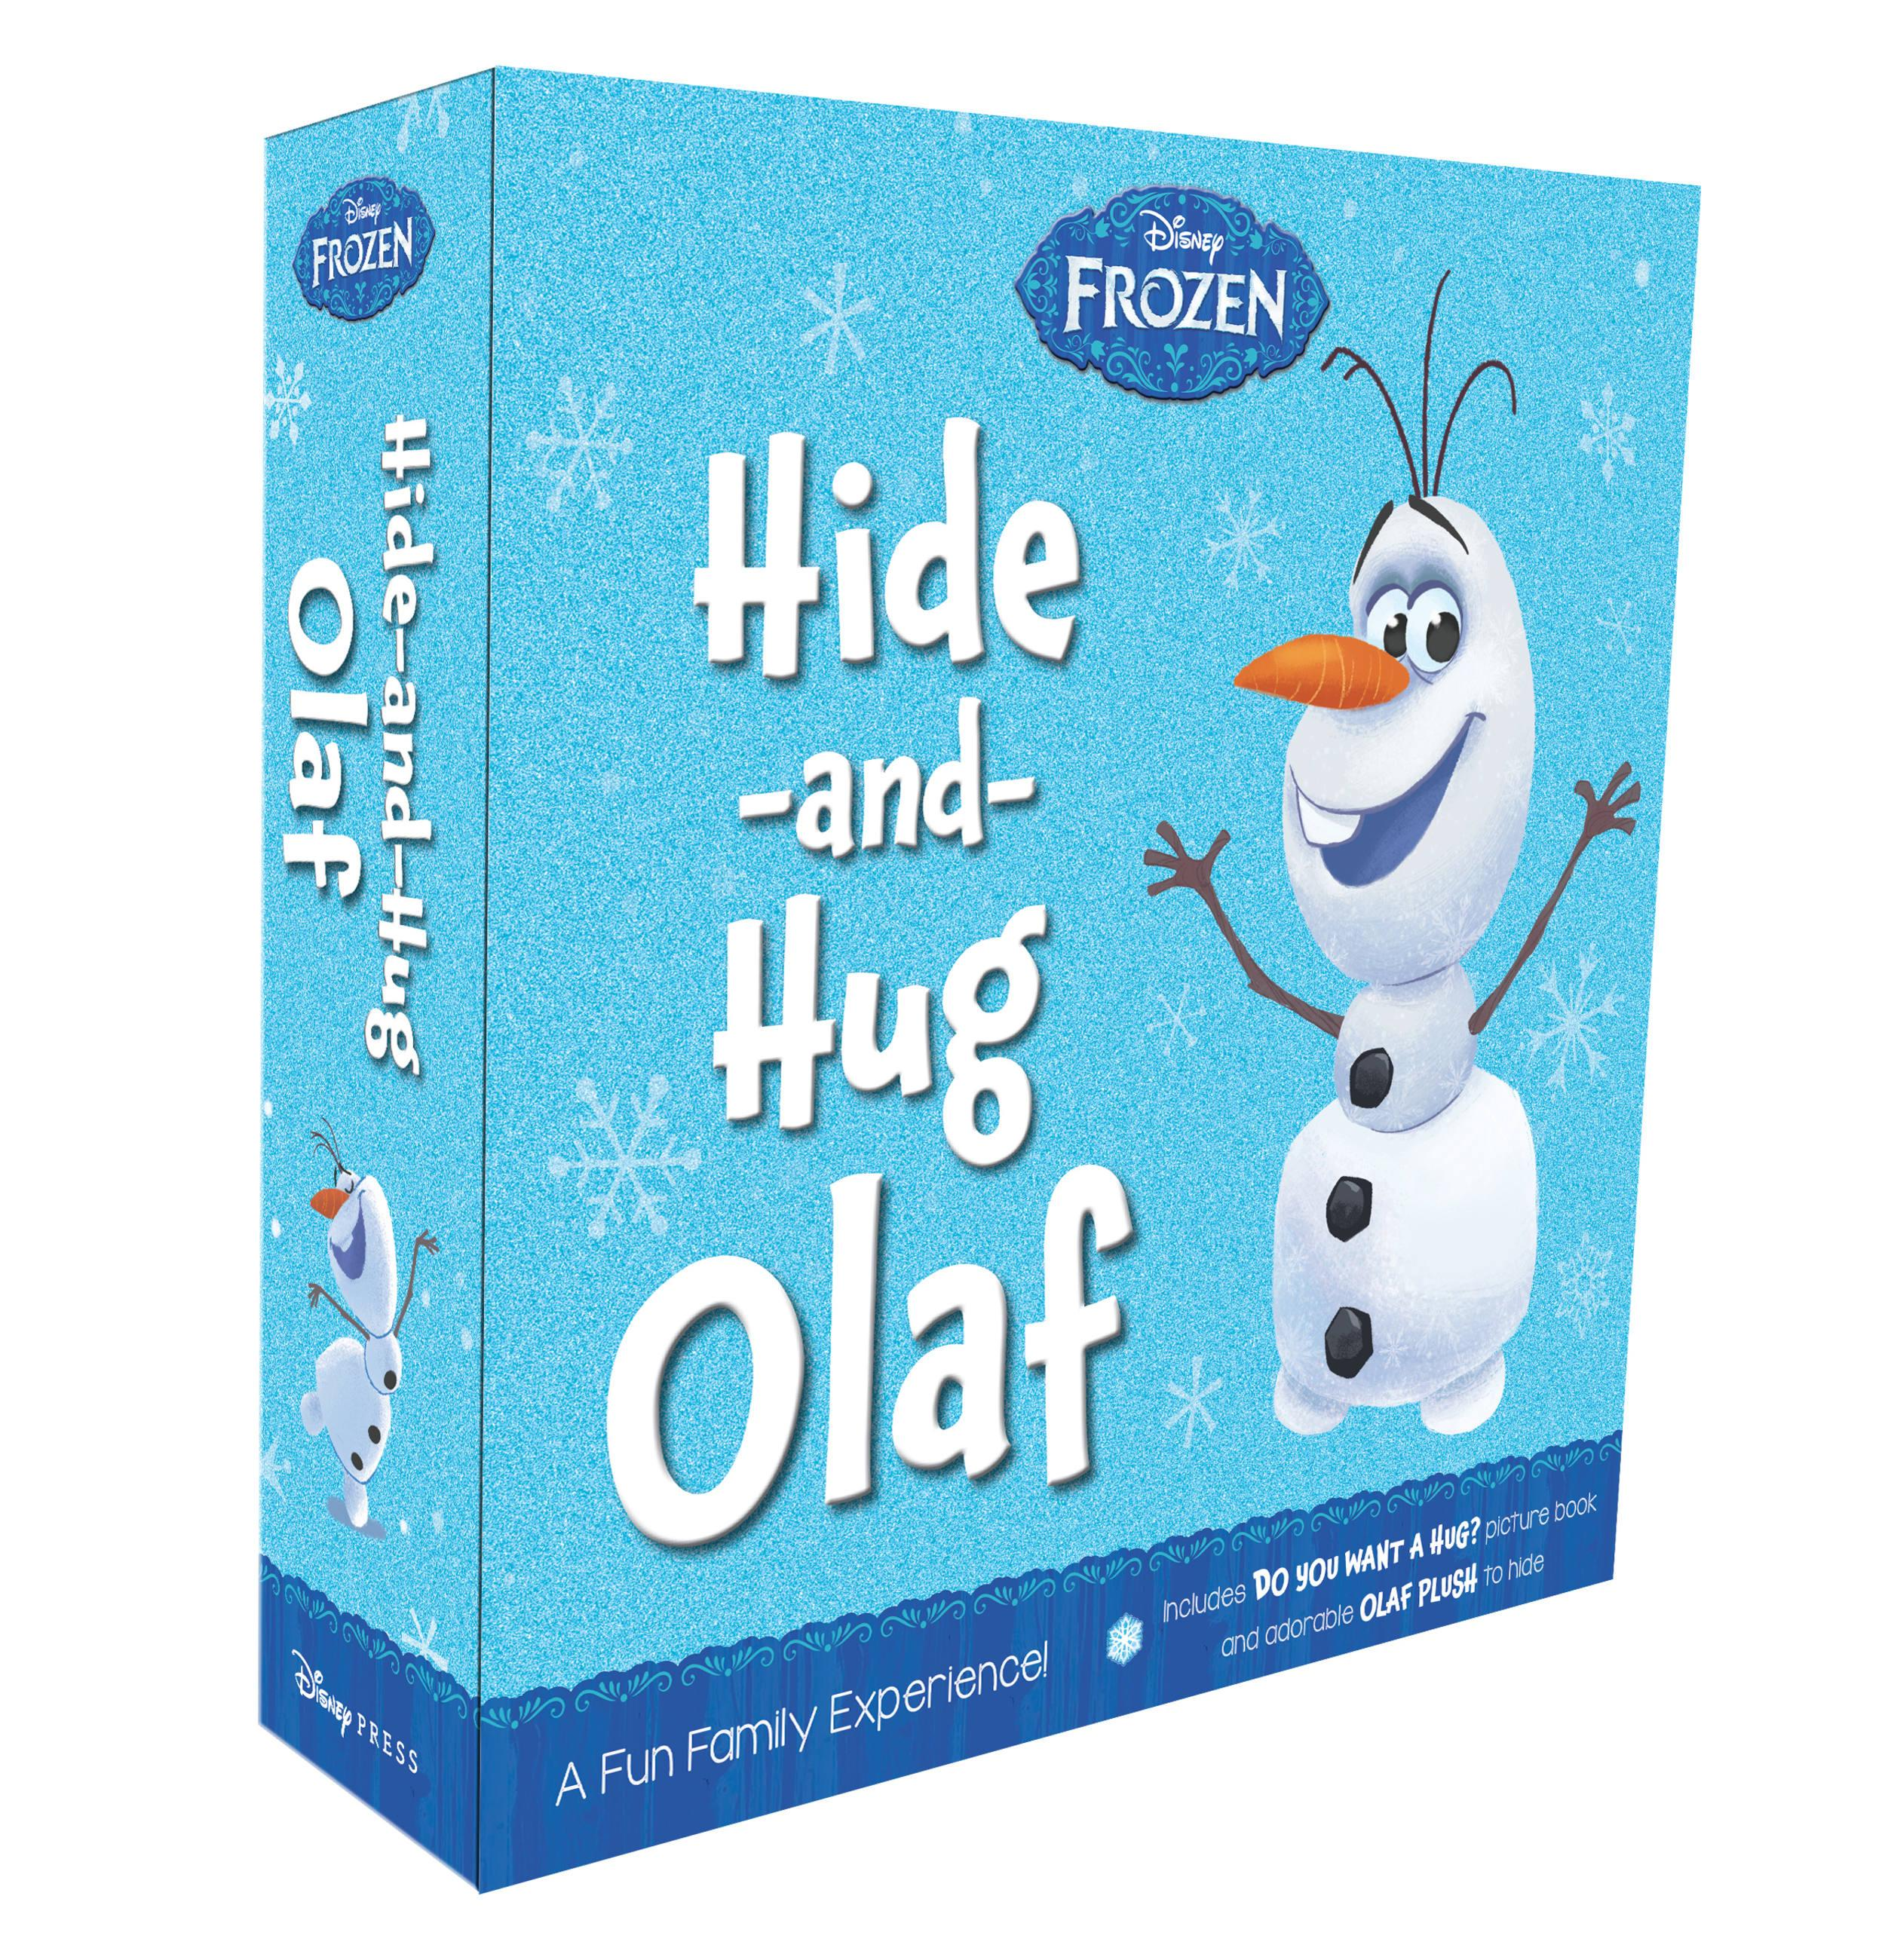 Frozen Hide-and-Hug Olaf : A Fun Family Experience!